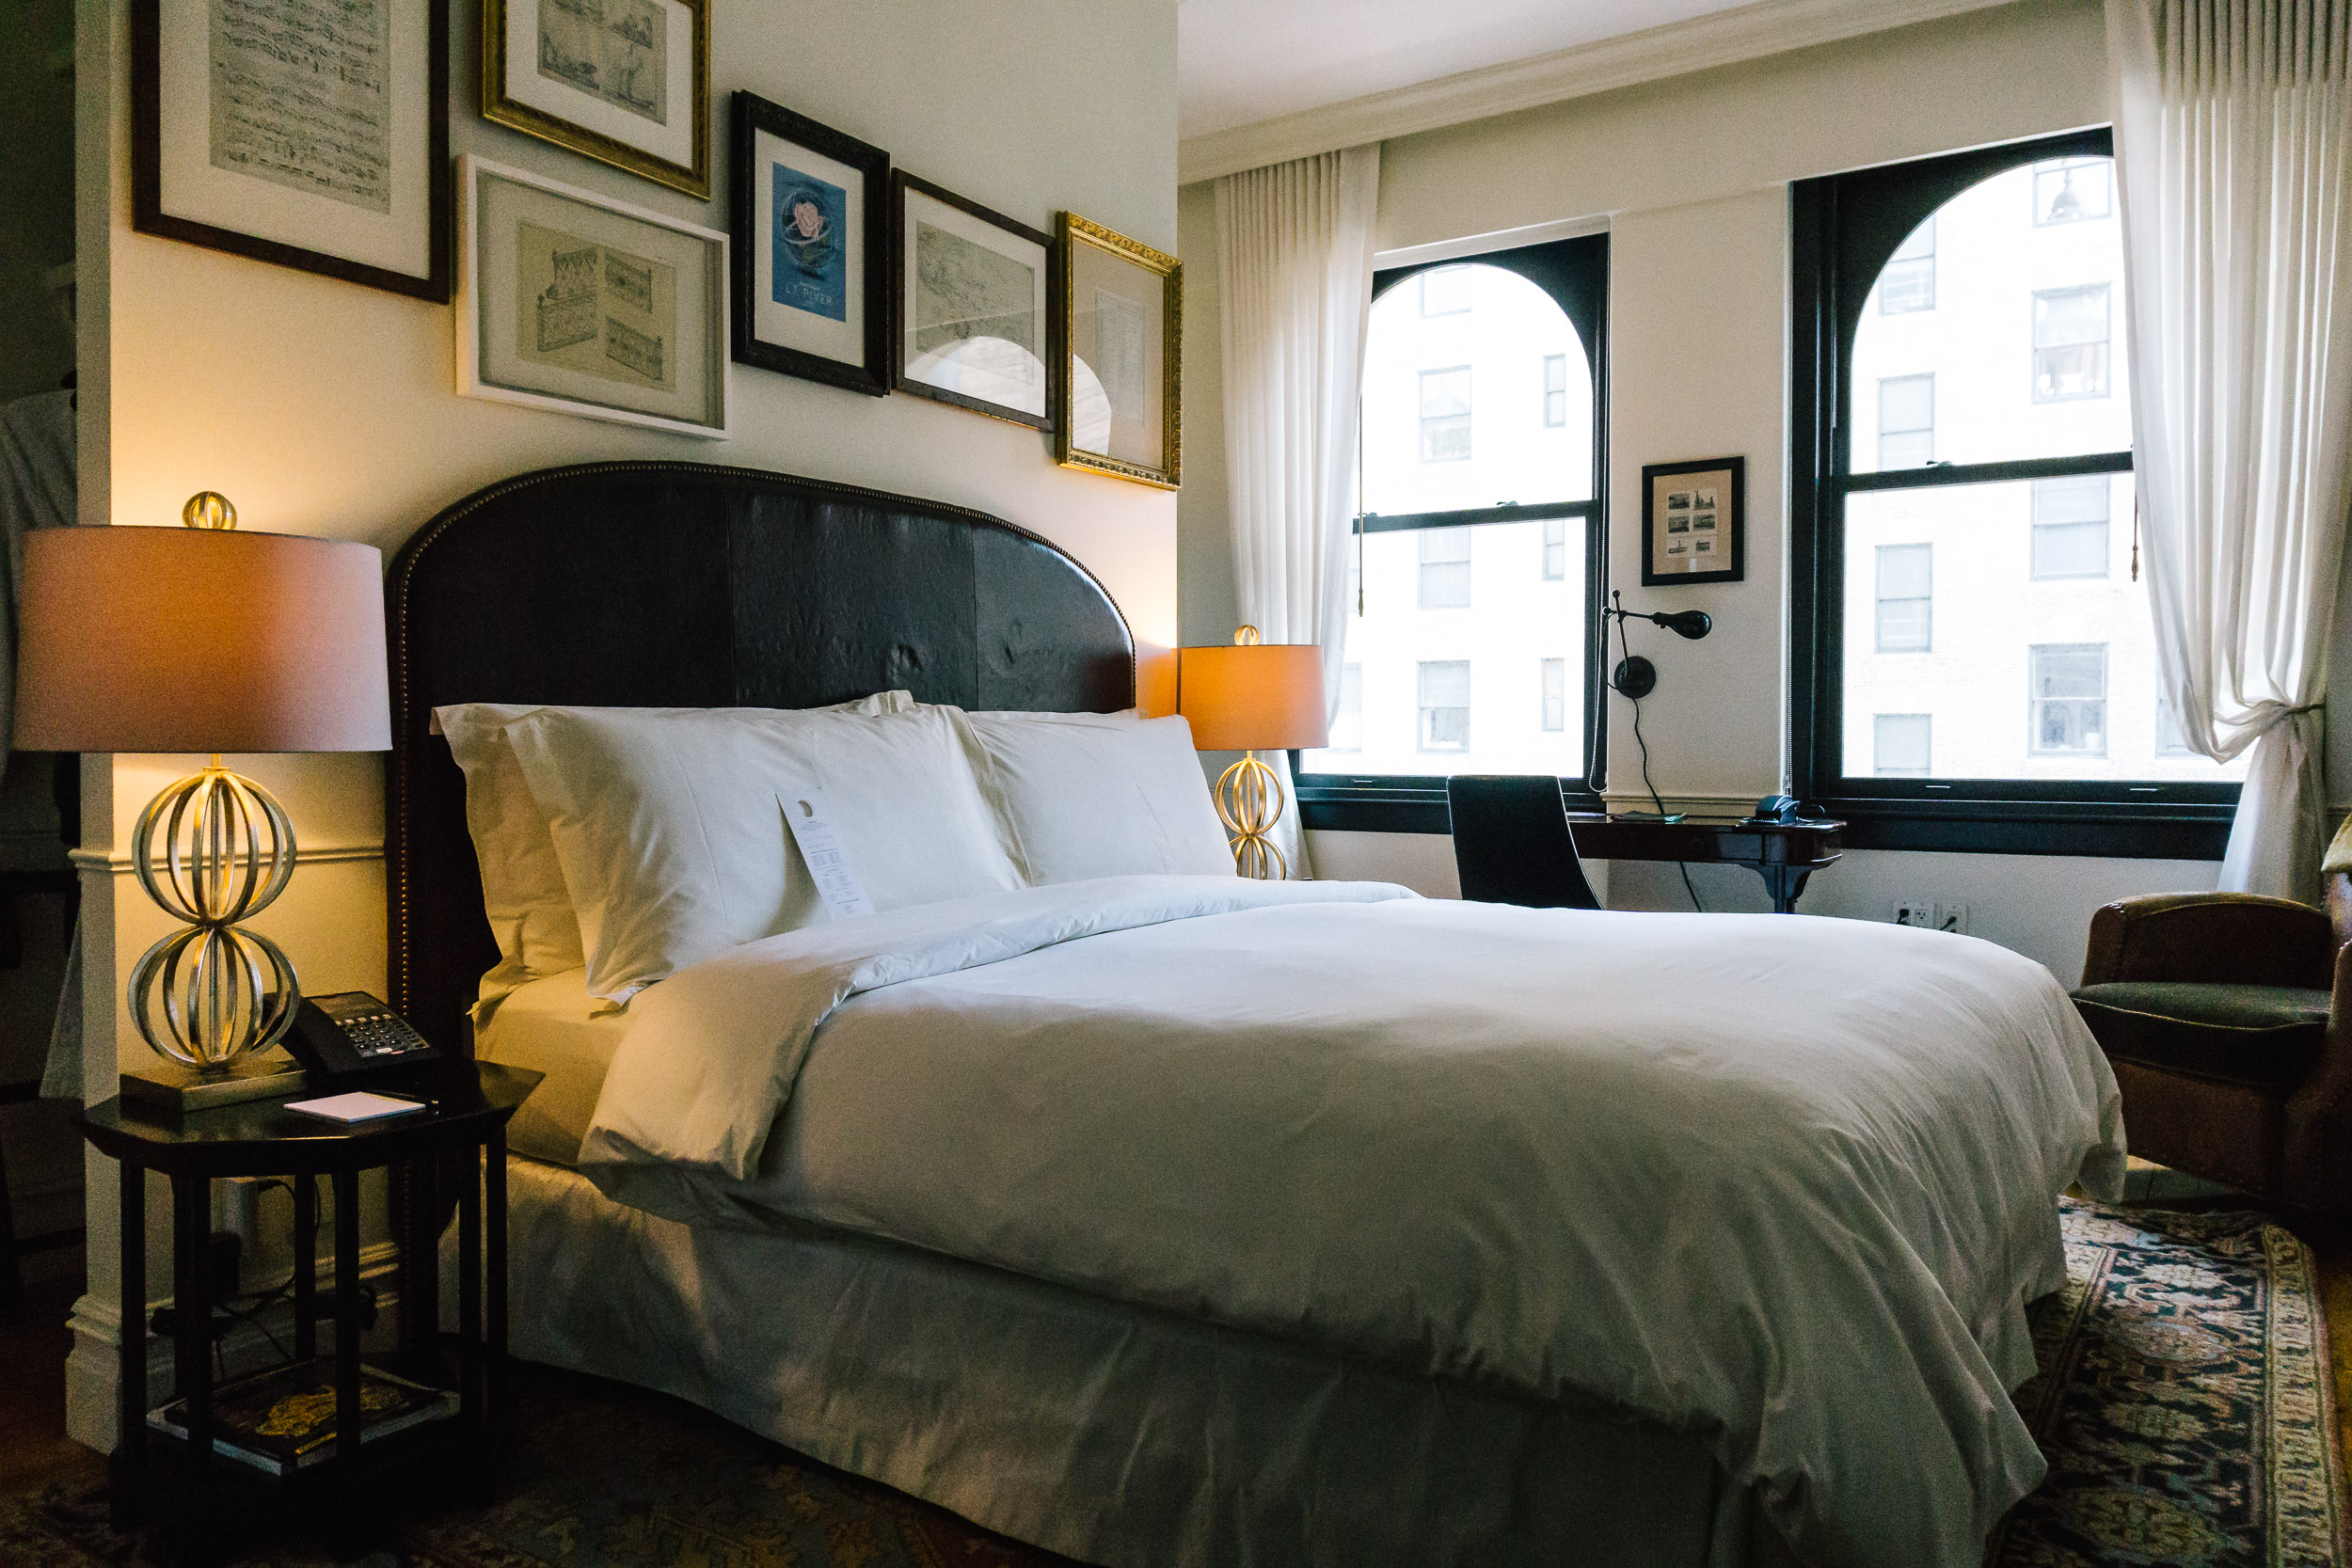 JC-THE NOMAD HOTEL NYC